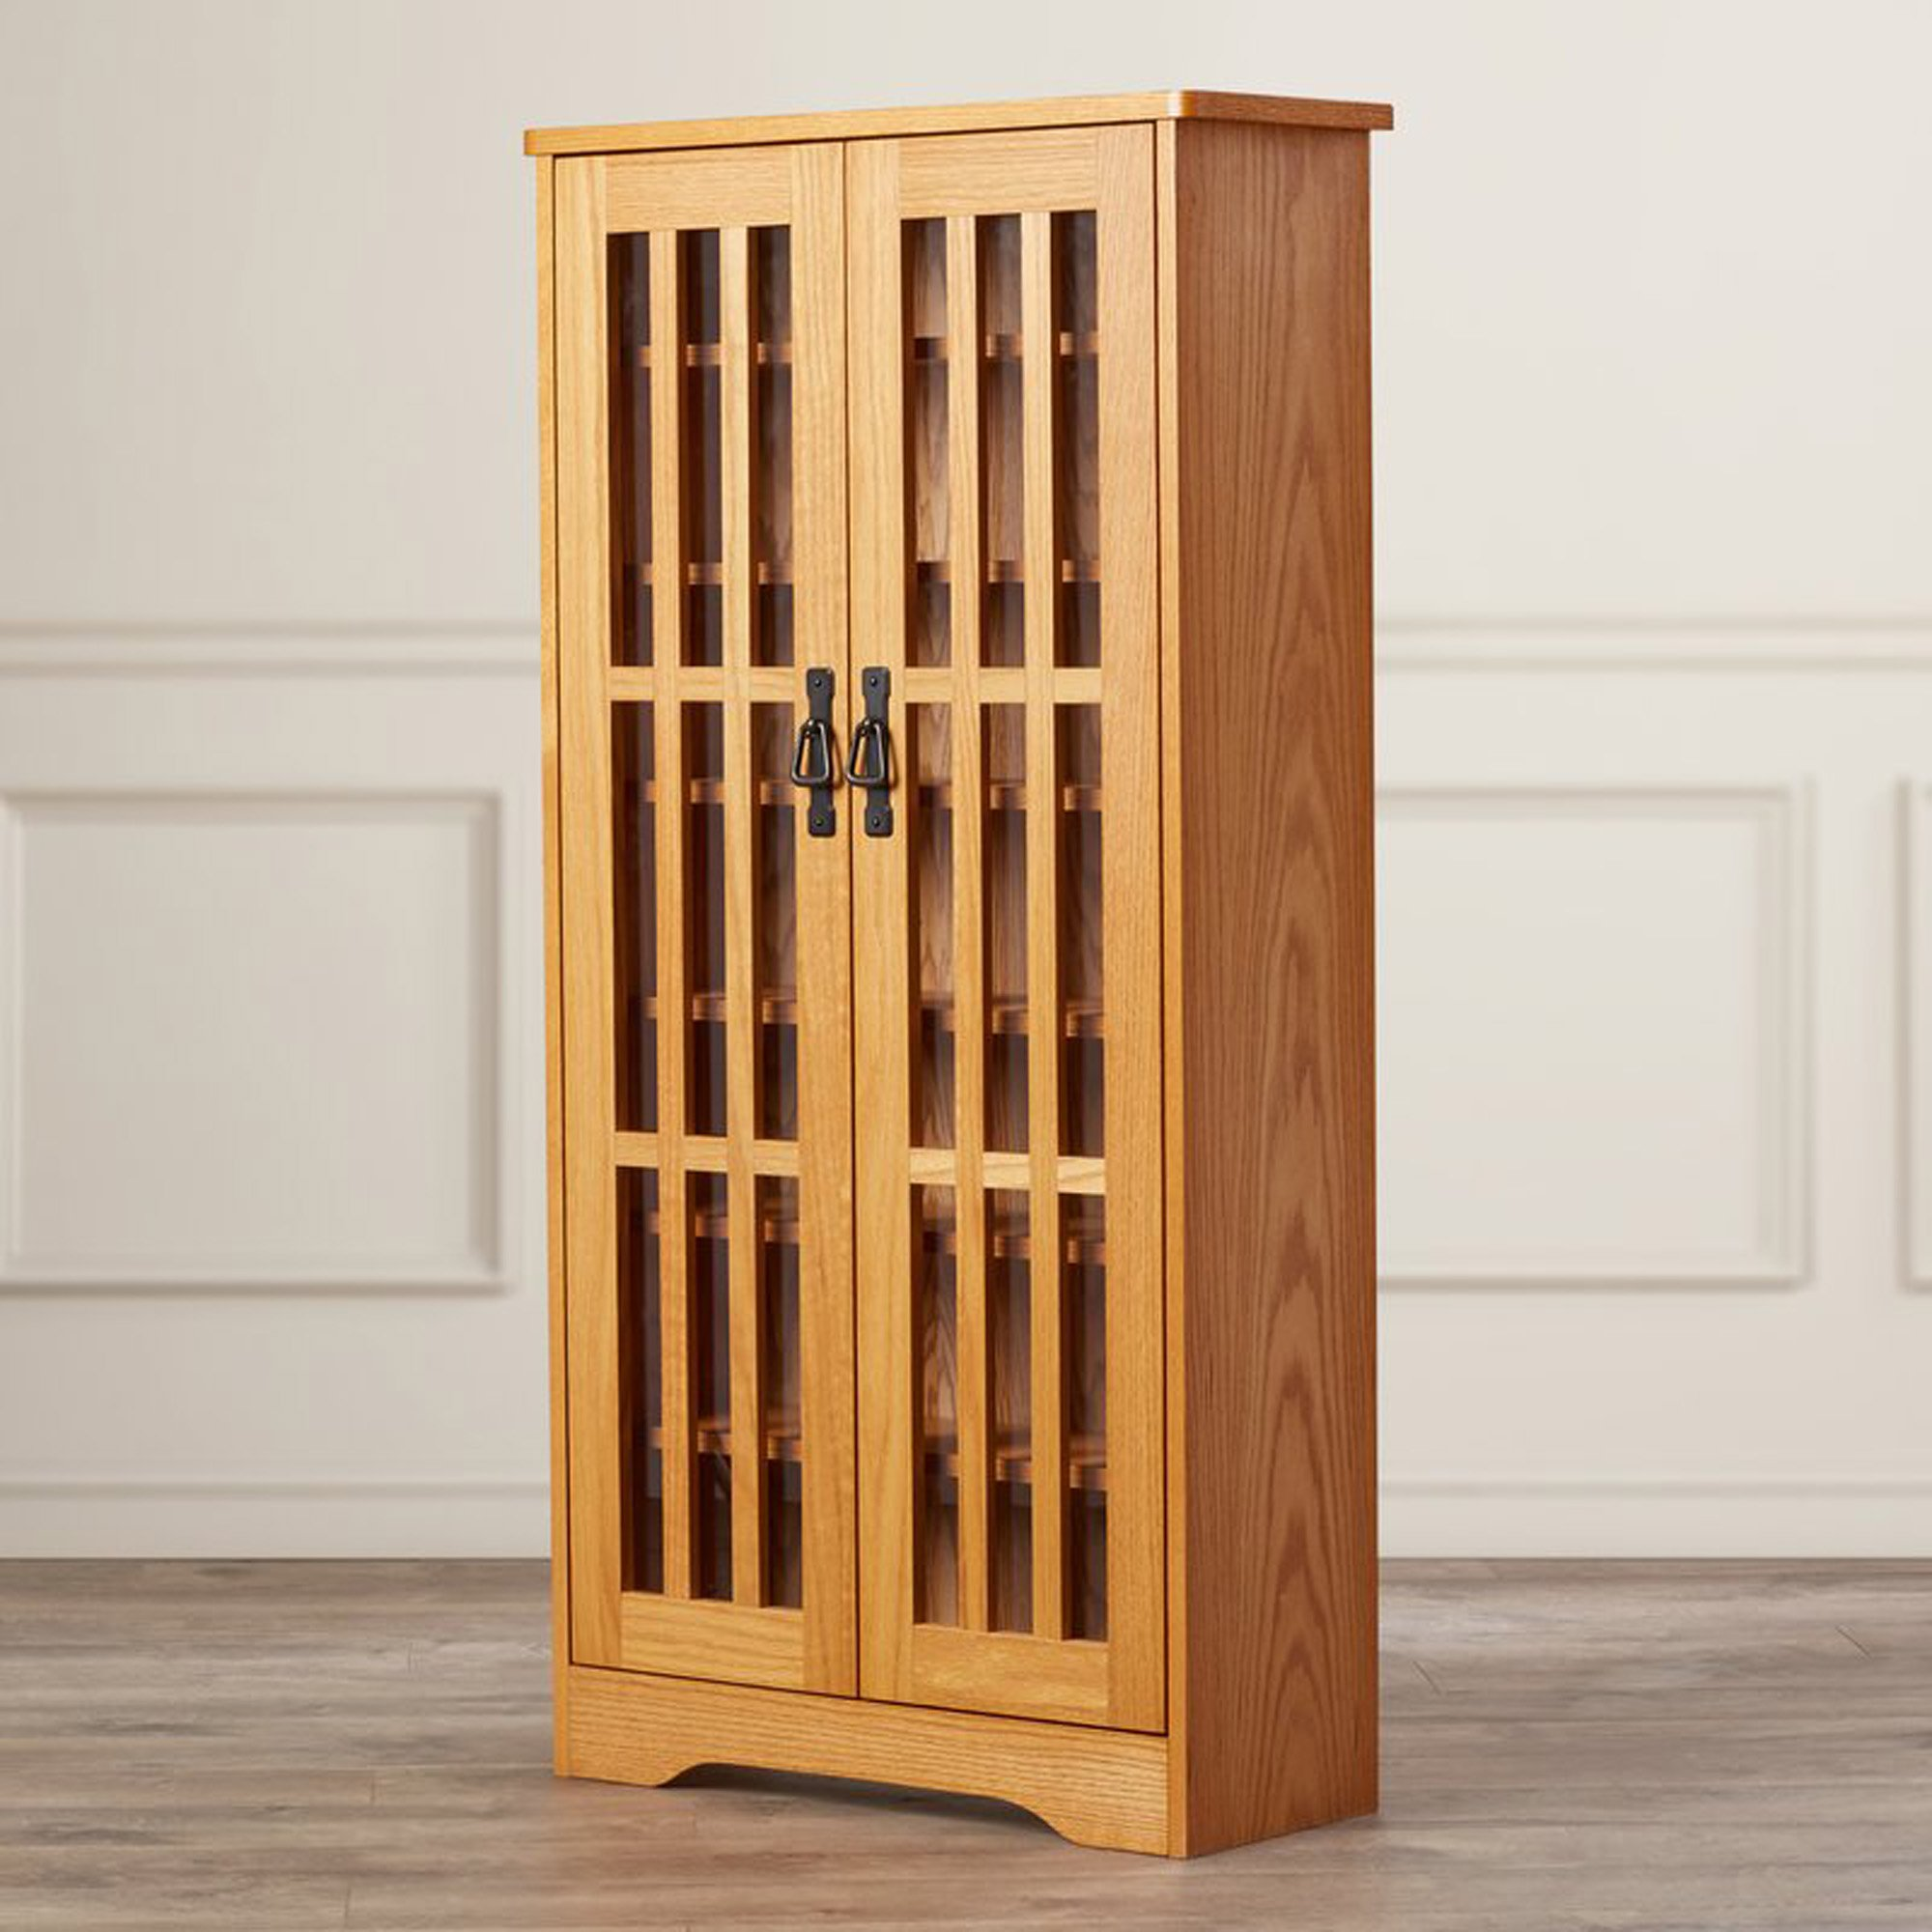 Contemporary Multimedia Storage Cabinet - Holds 371 CD or 185 DVD - Freestanding Wood Media Organizer with Tempered Glass Doors (Oak)